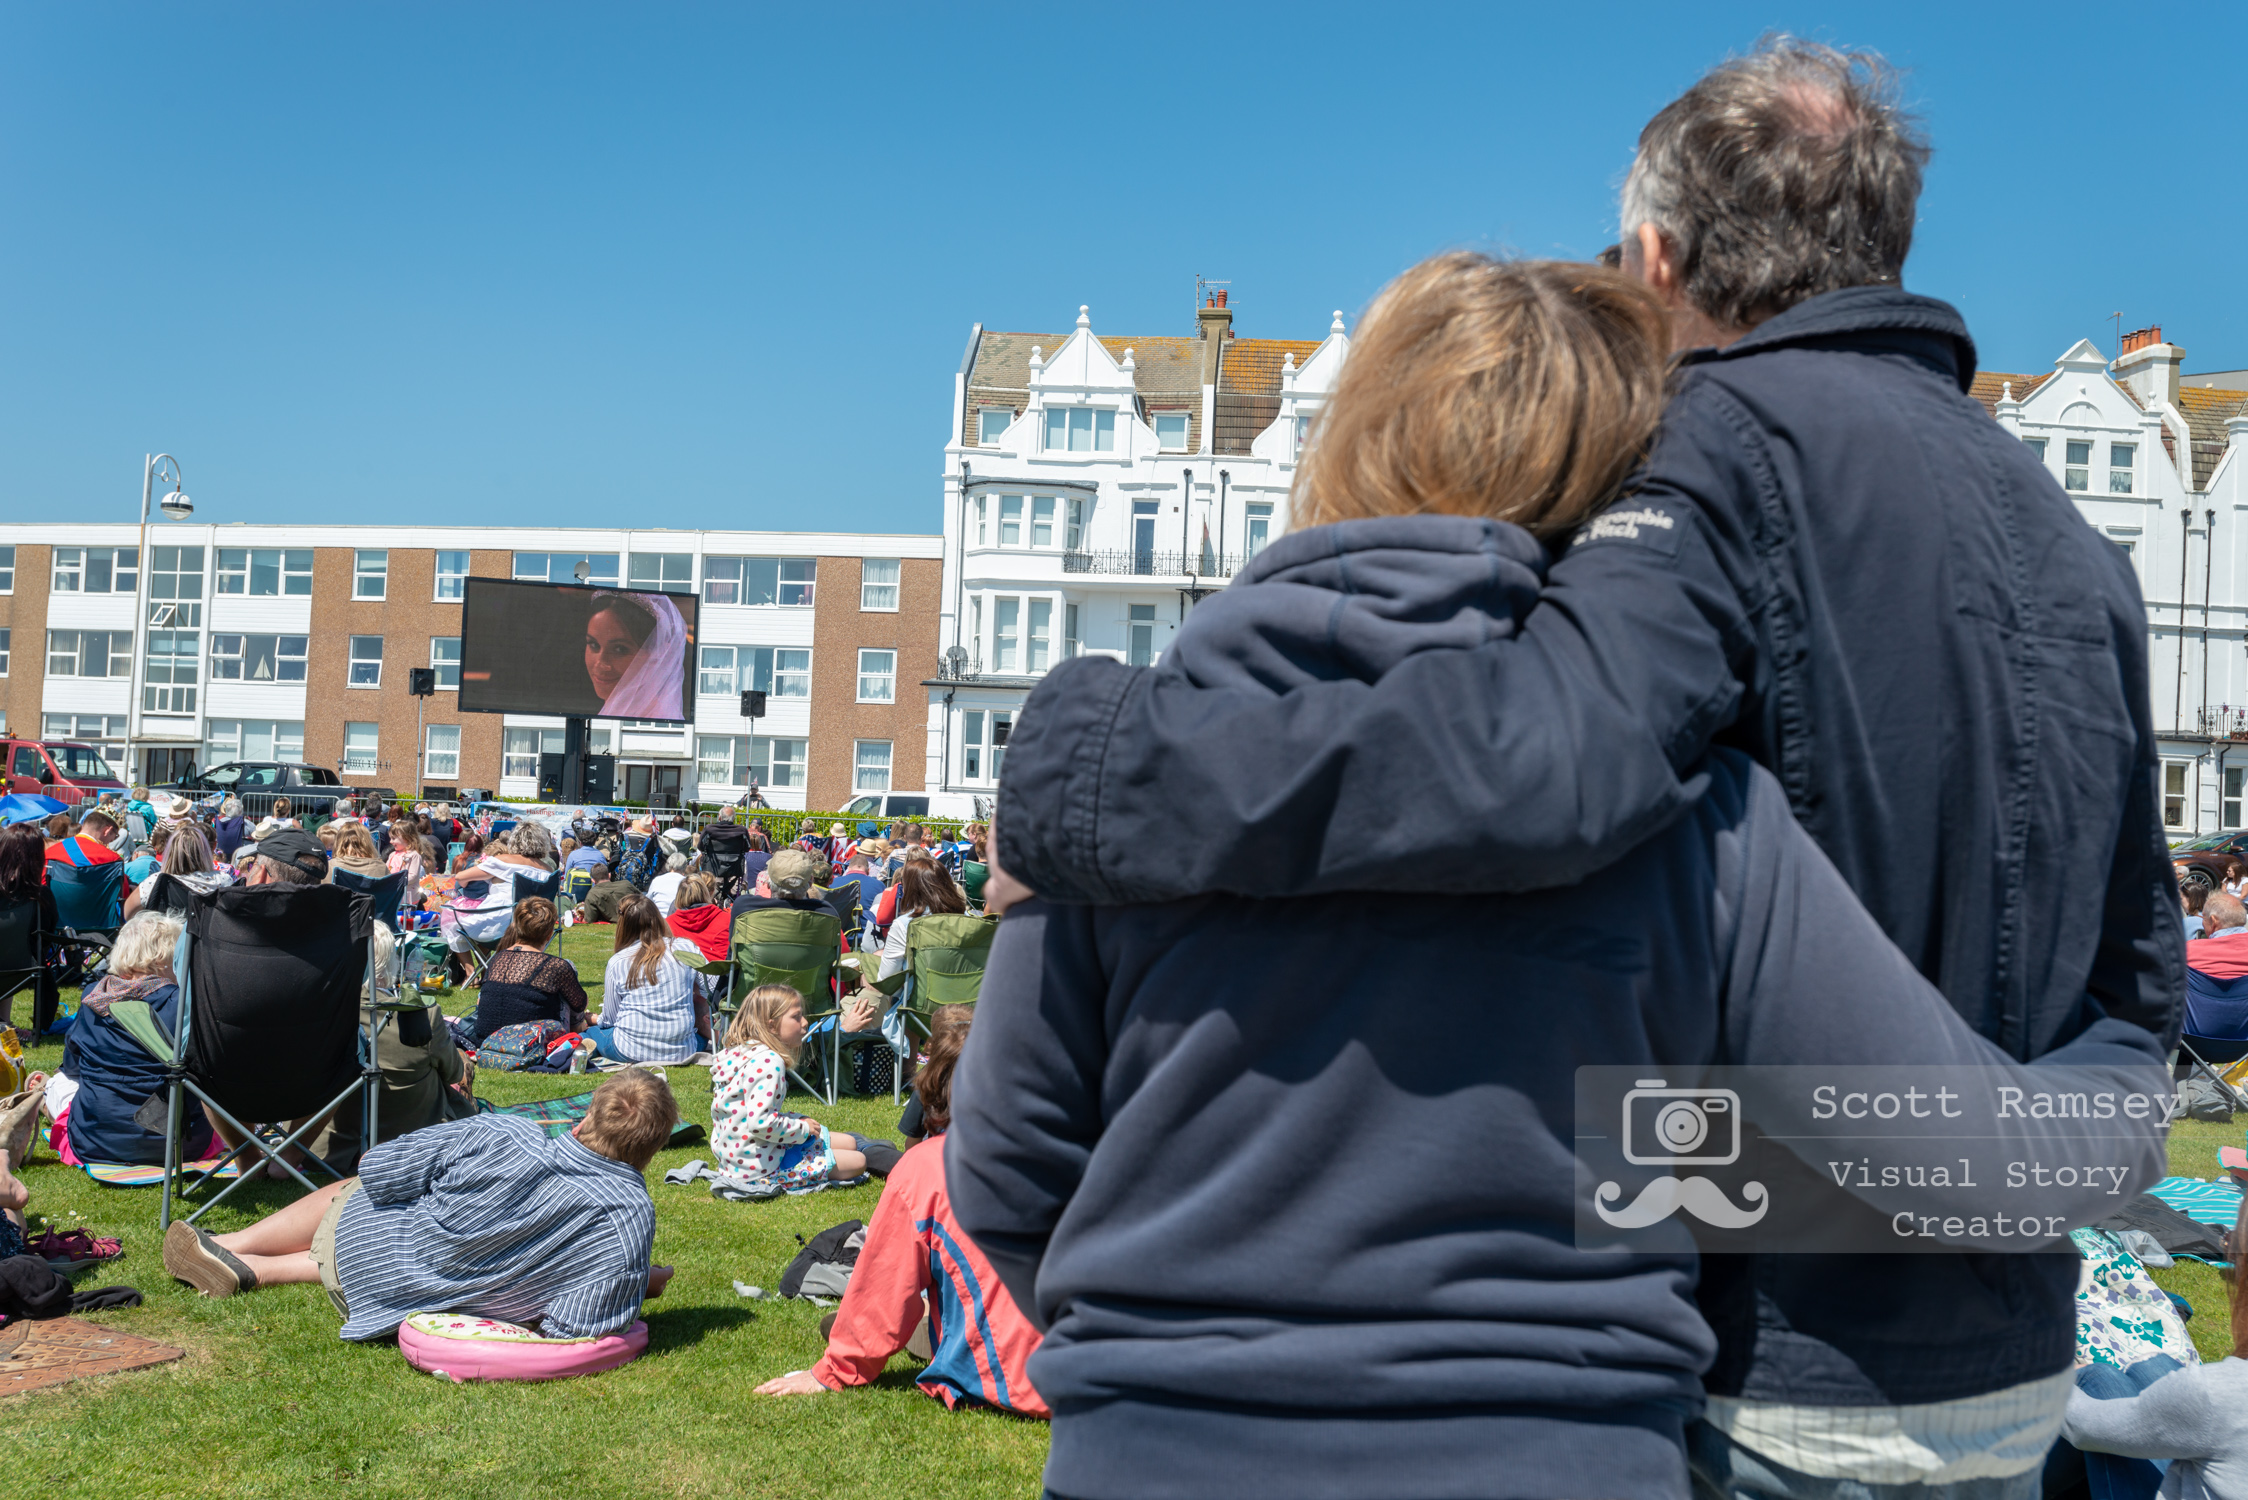 East-Sussex-Editorial-Photographer-Bexhill-Royal-Wedding-Celebrations-©-Scott-Ramsey-www.scottramsey.co.uk-009.jpg